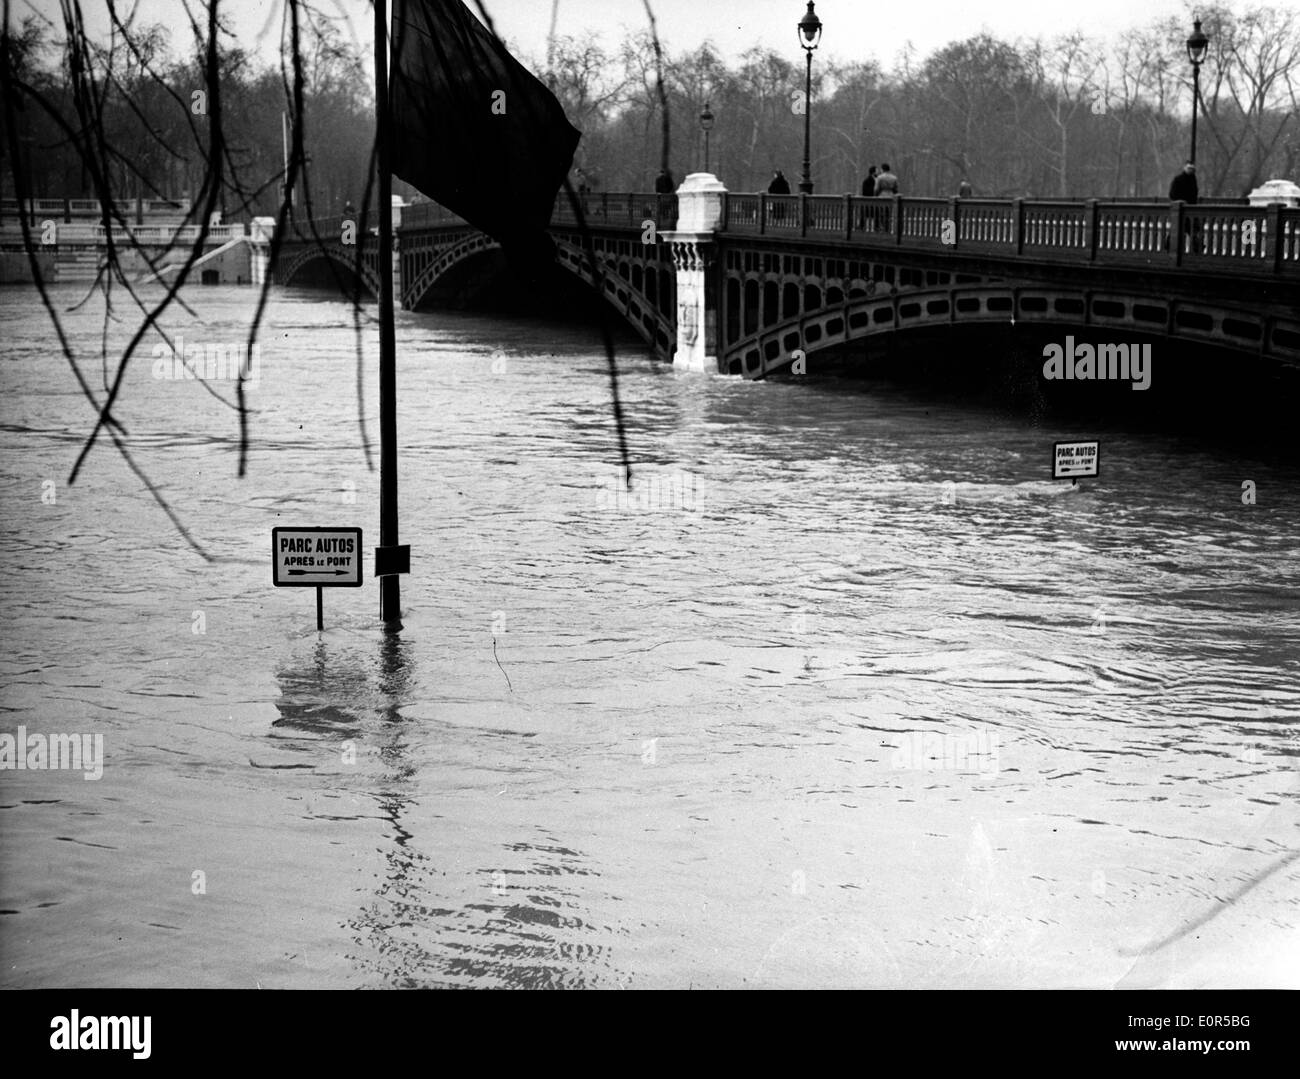 NATURAL DISASTERS: 1958 Seine River Floods in Paris - Stock Image